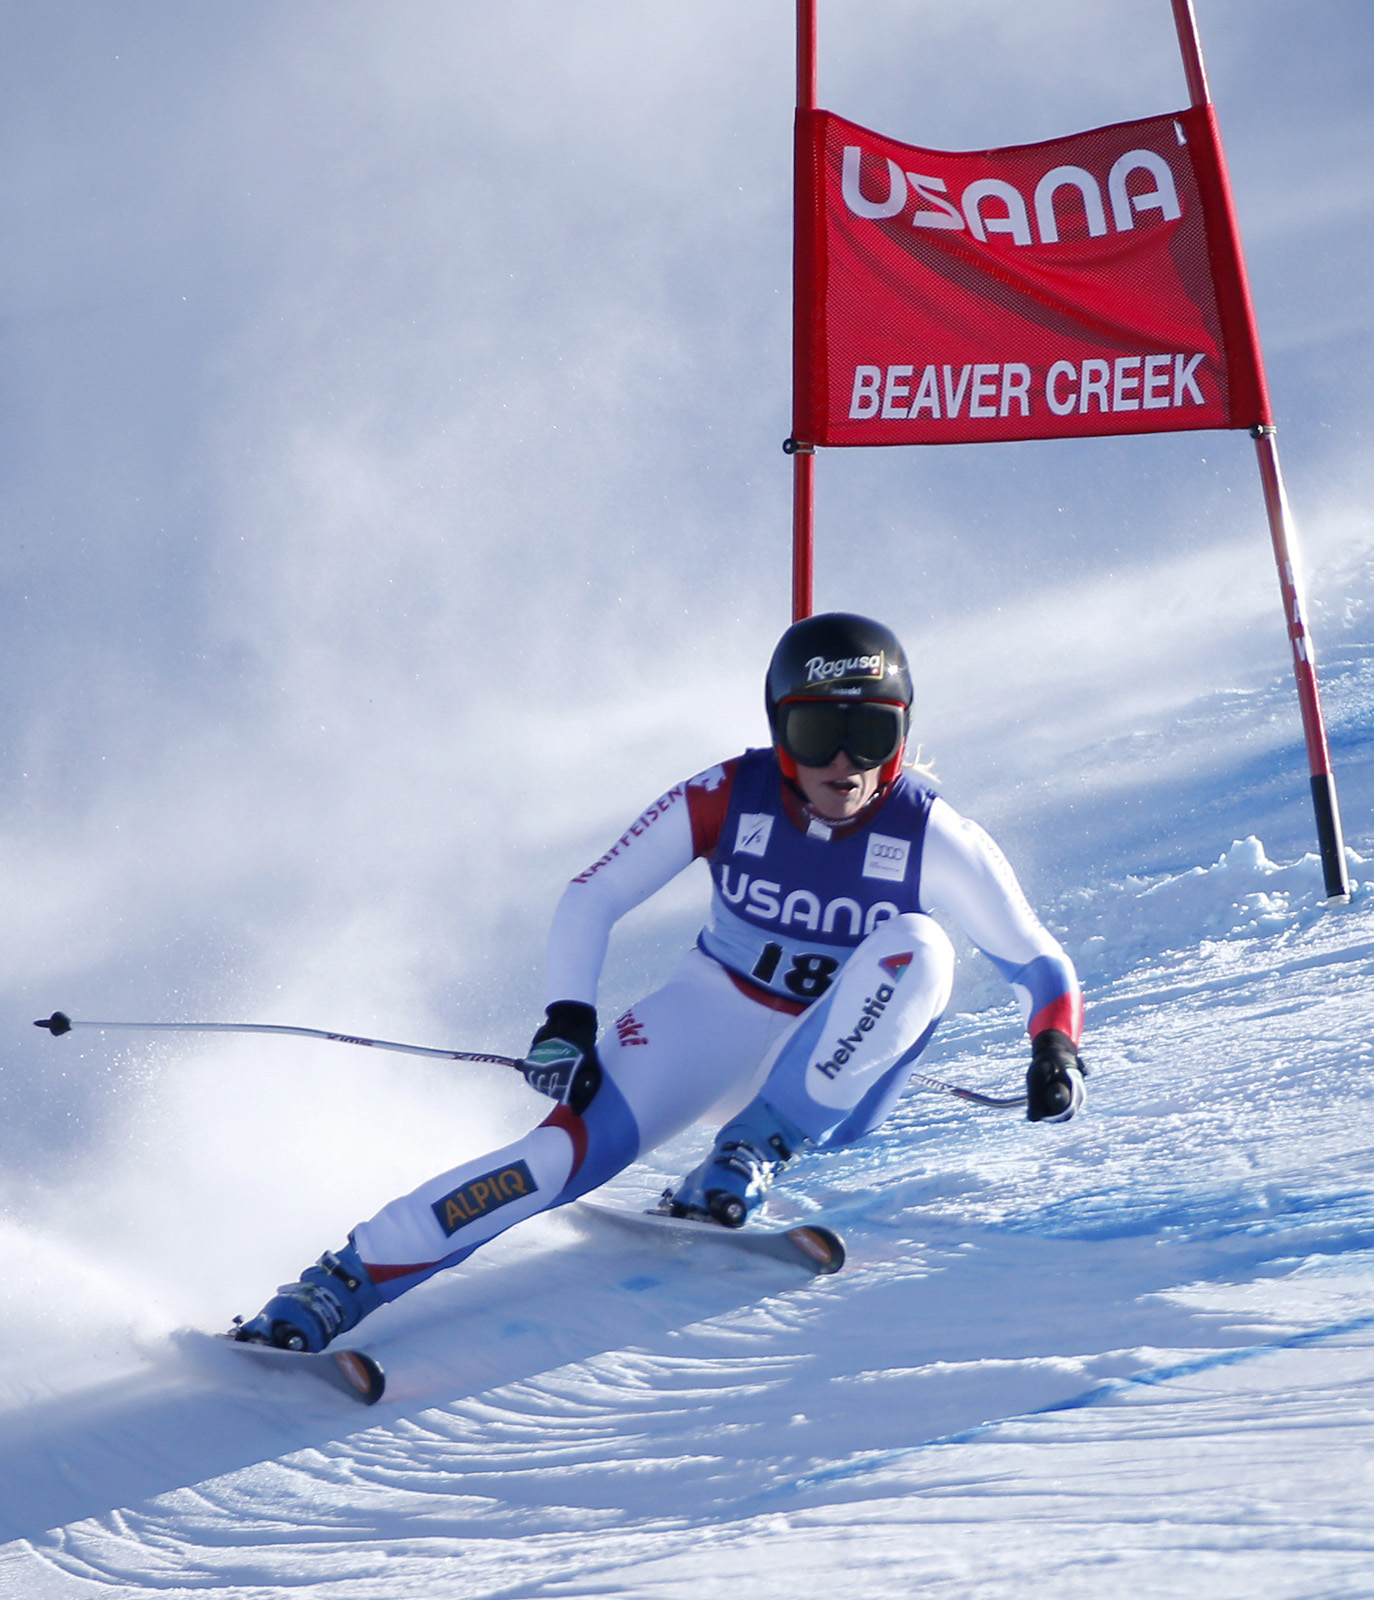 Gut of Switzerland skis past a gate on her way to winning the women's World Cup Super-G ski race in Beaver Creek